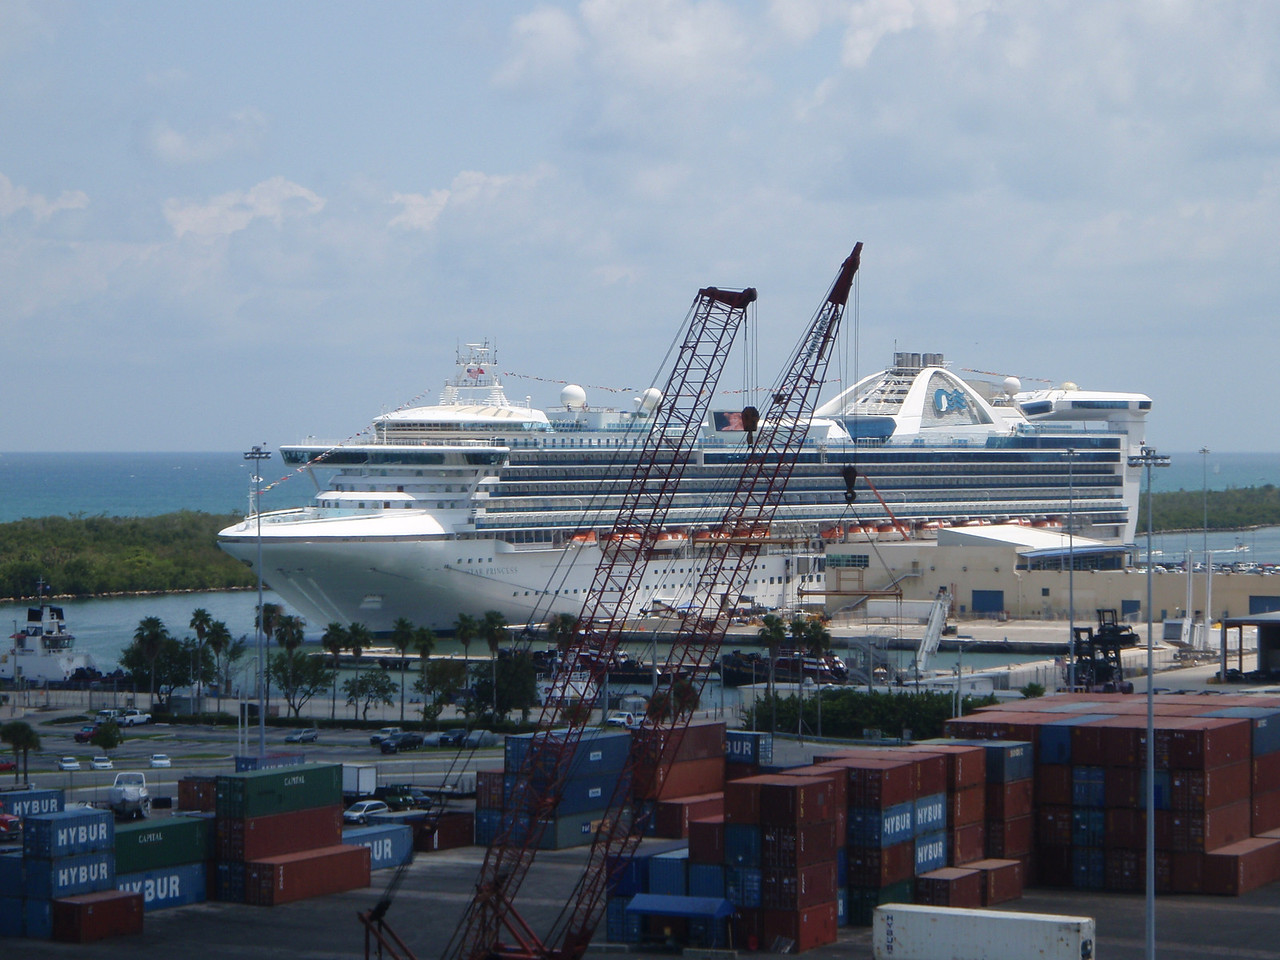 Star Princess was docked in another area of the port.  There were six cruise ships in port on Saturday.